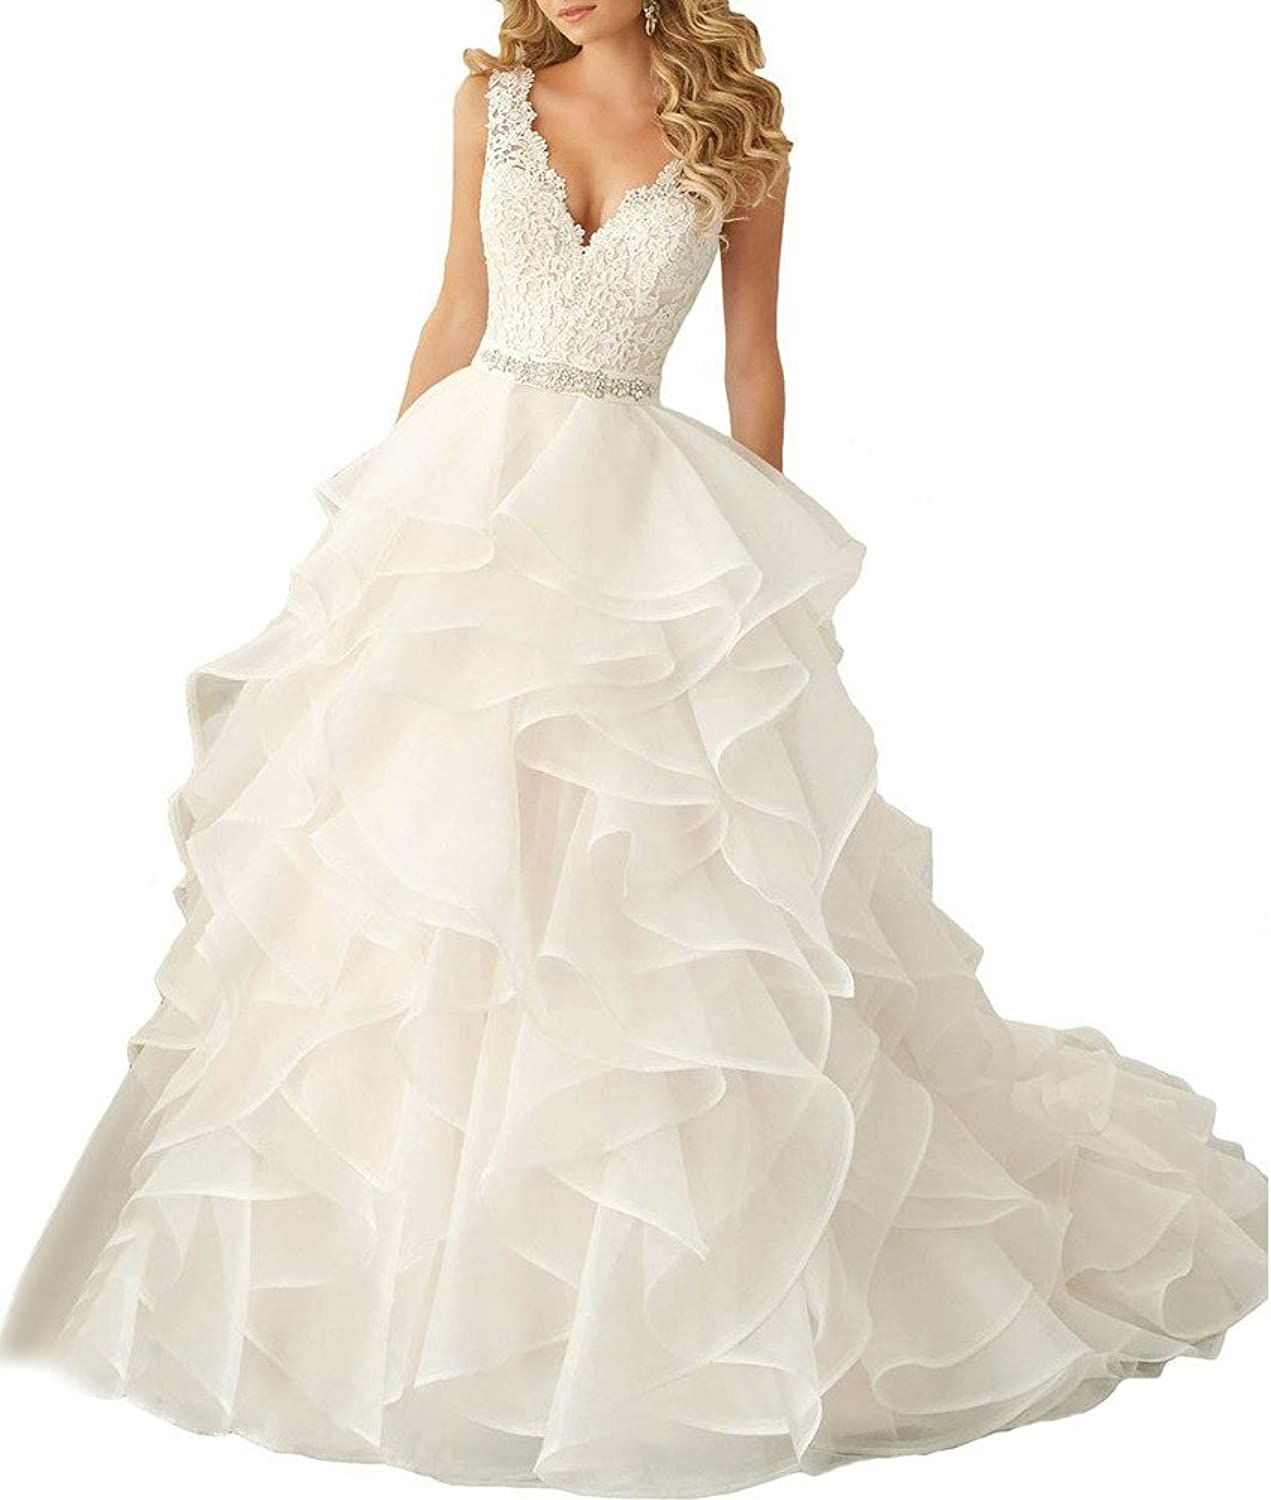 Beauty Bridal Sexy V Neck 2016 Ruffles Organza Wedding Dresses for Bride Gown